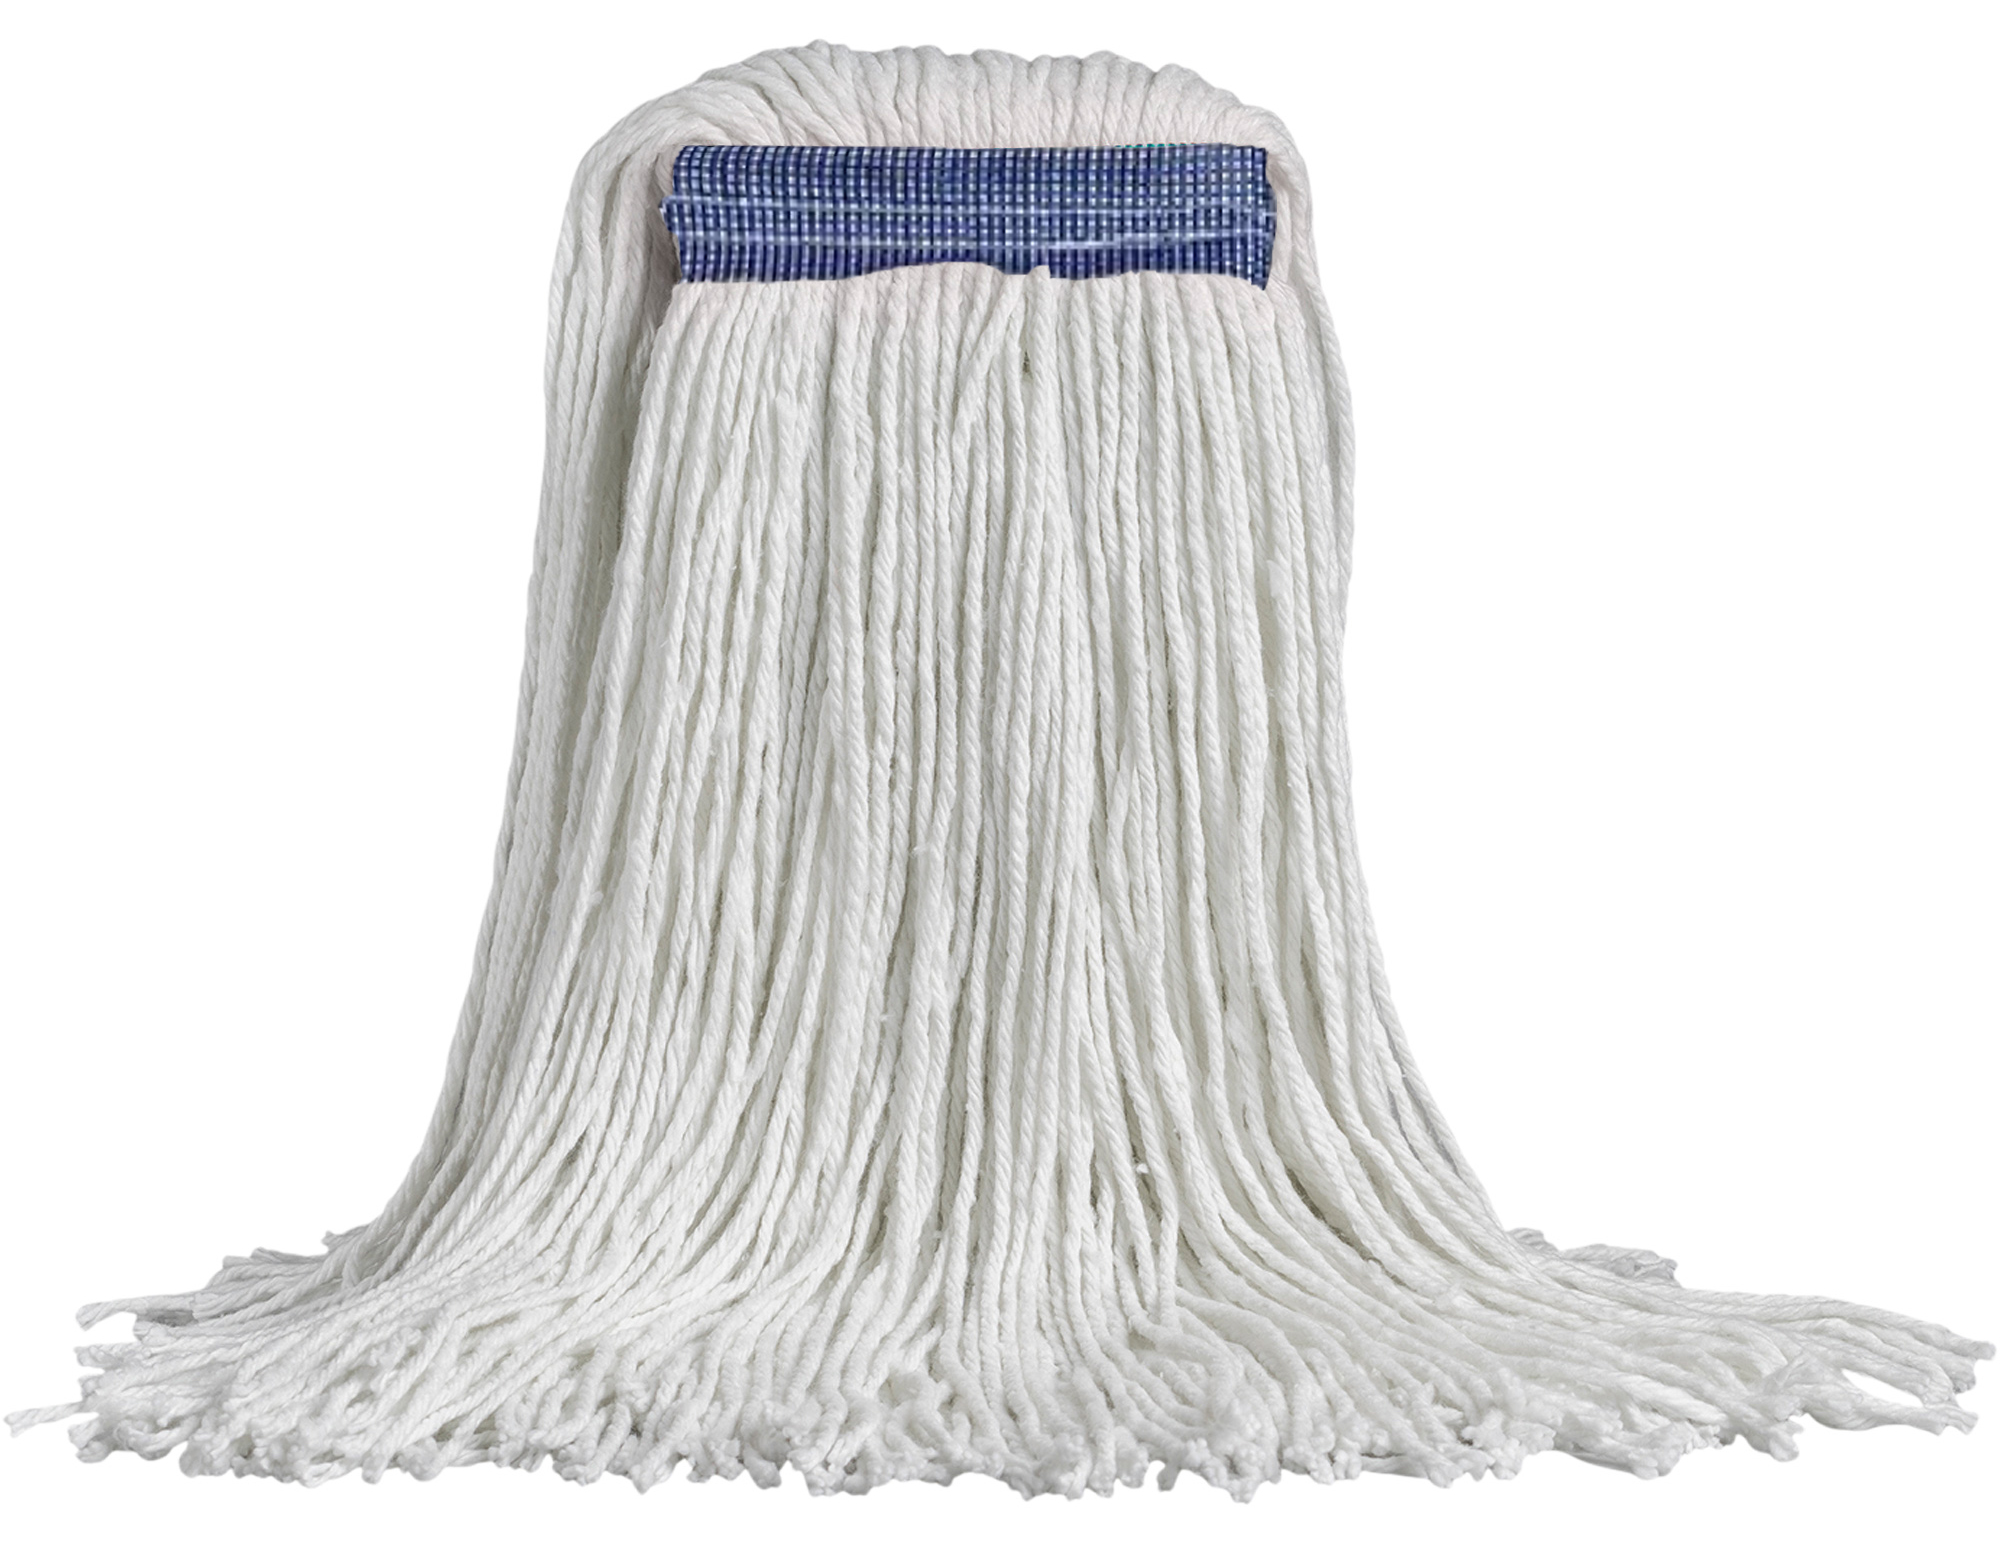 Synray™ Cut End, Narrow Band Mop Head 16oz/450g